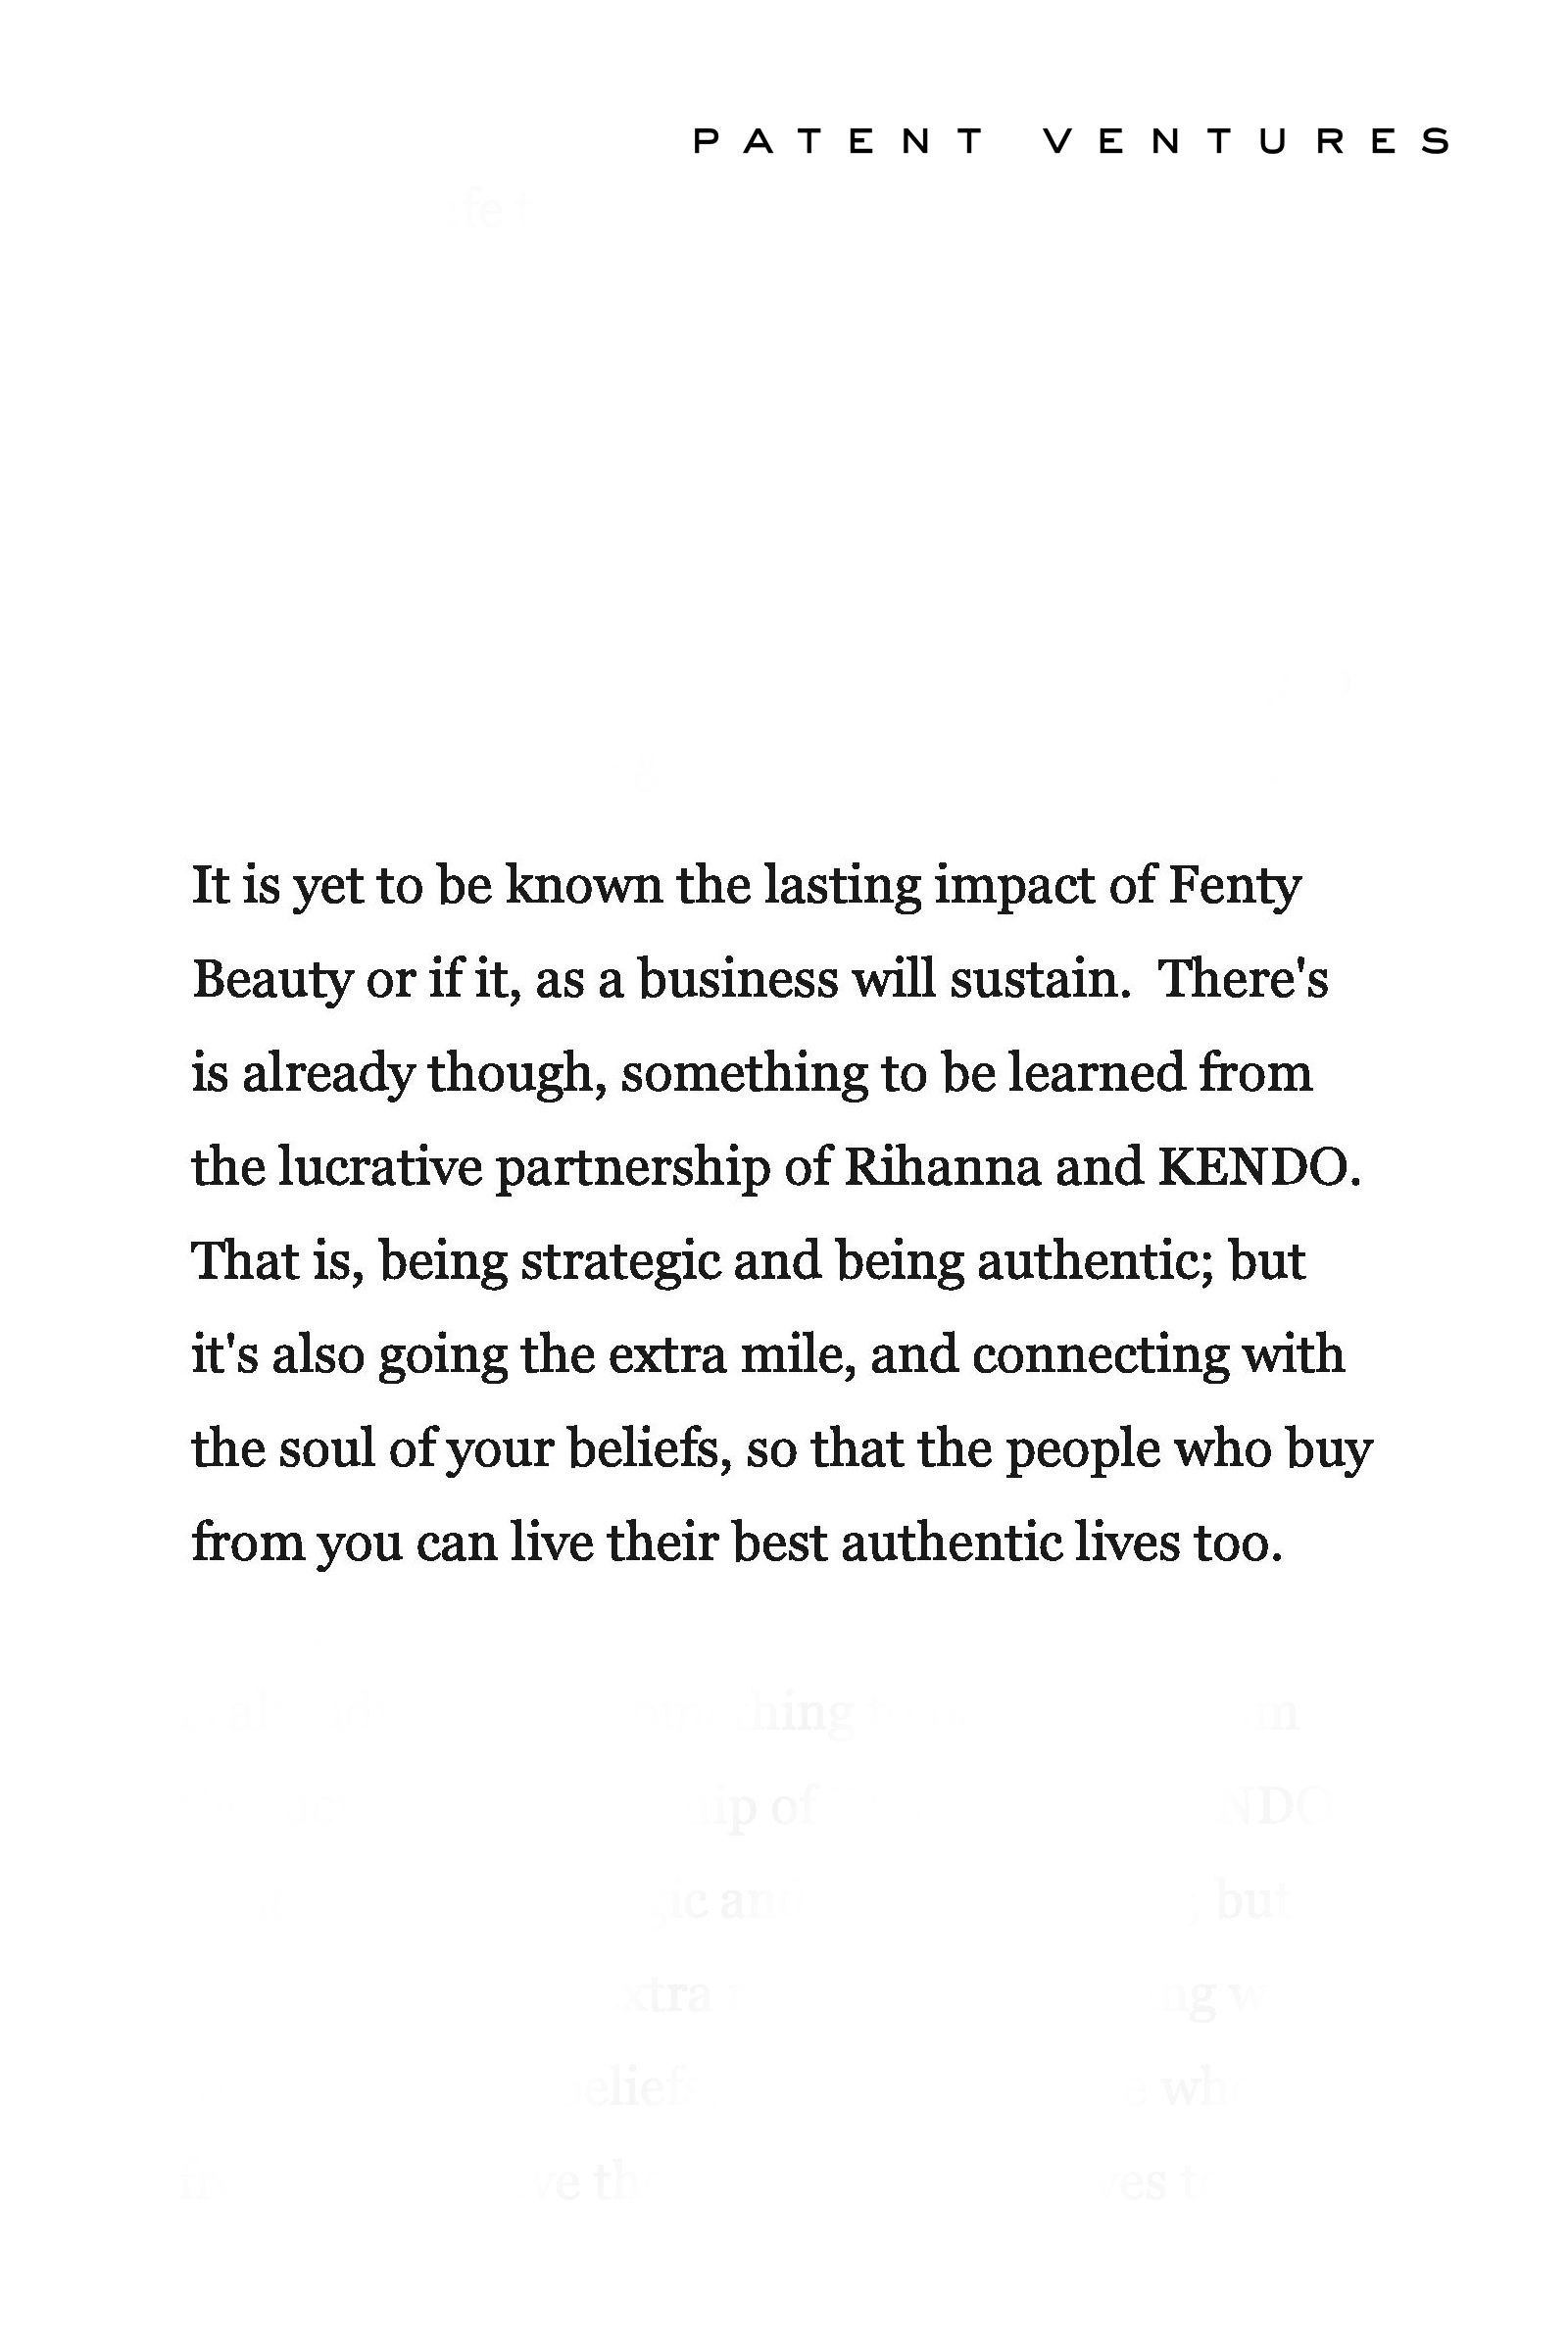 Stunna,-Fenty-Beauty-s-Performance-Is-the-Jolt-the-Beauty-Industry-Needed-page-009